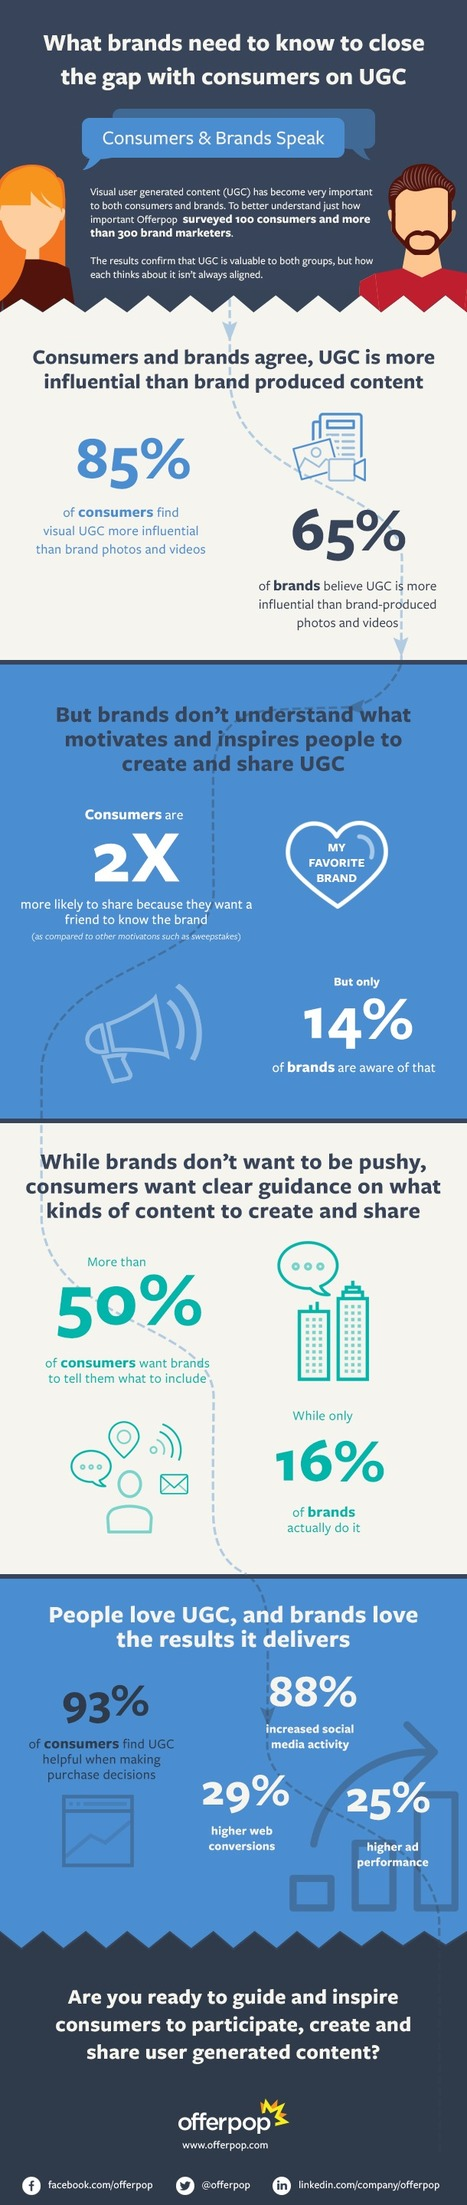 How to Connect with Consumers via User-Generated Content #Infographic   MarketingHits   Scoop.it